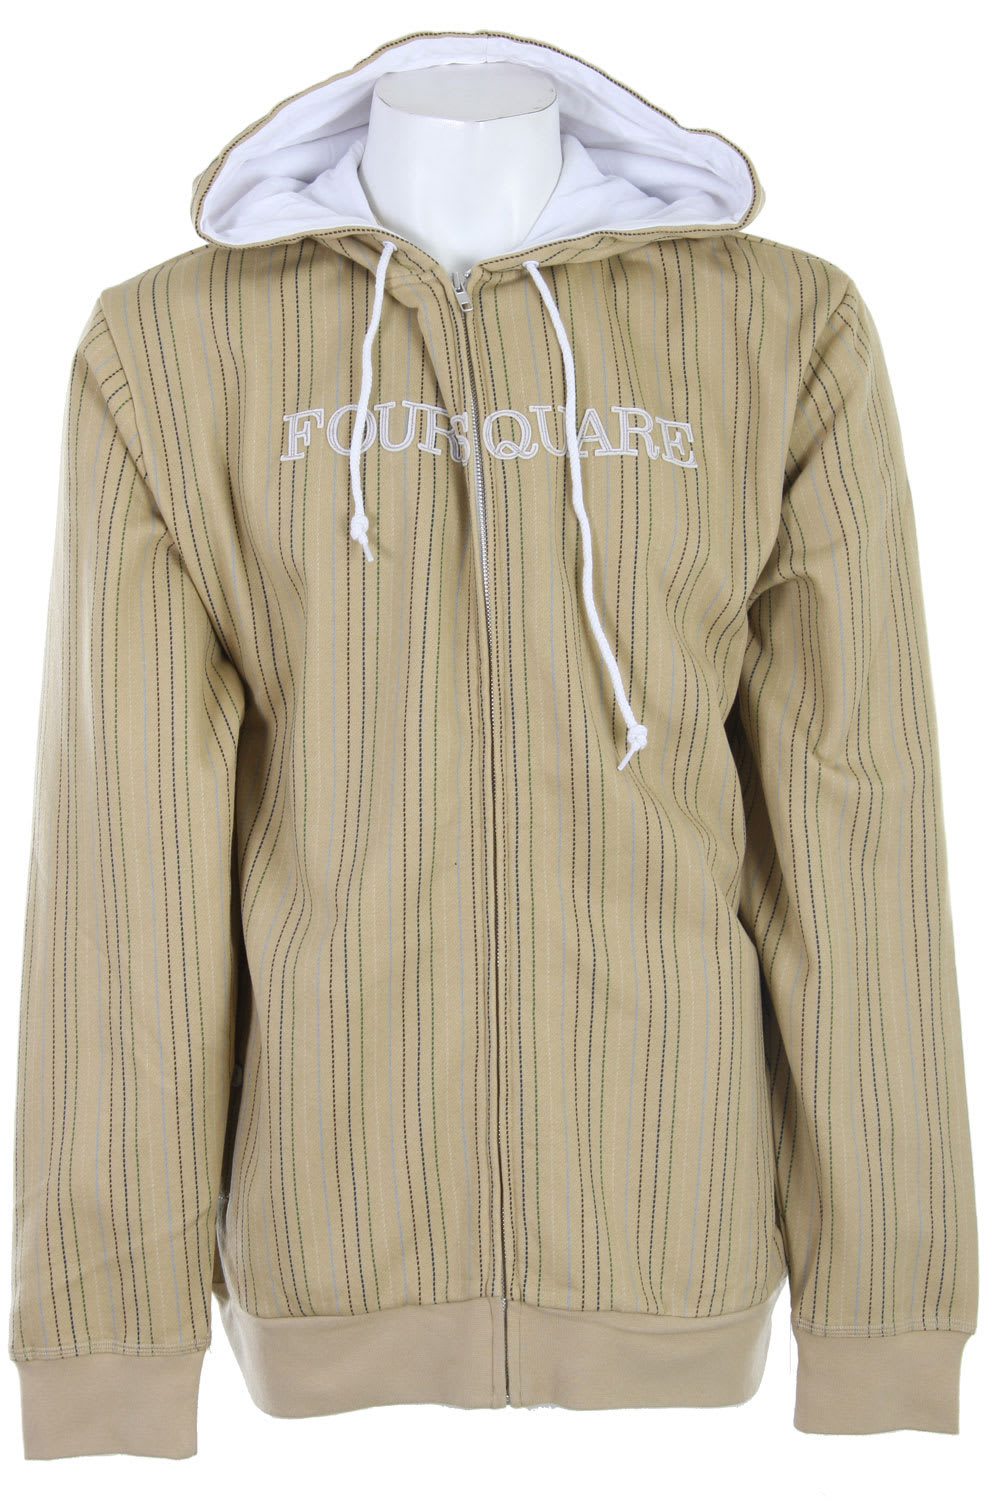 Shop for Foursquare Multi-Color Pinstripe Hoodie Tan Multicolor Pin - Men's